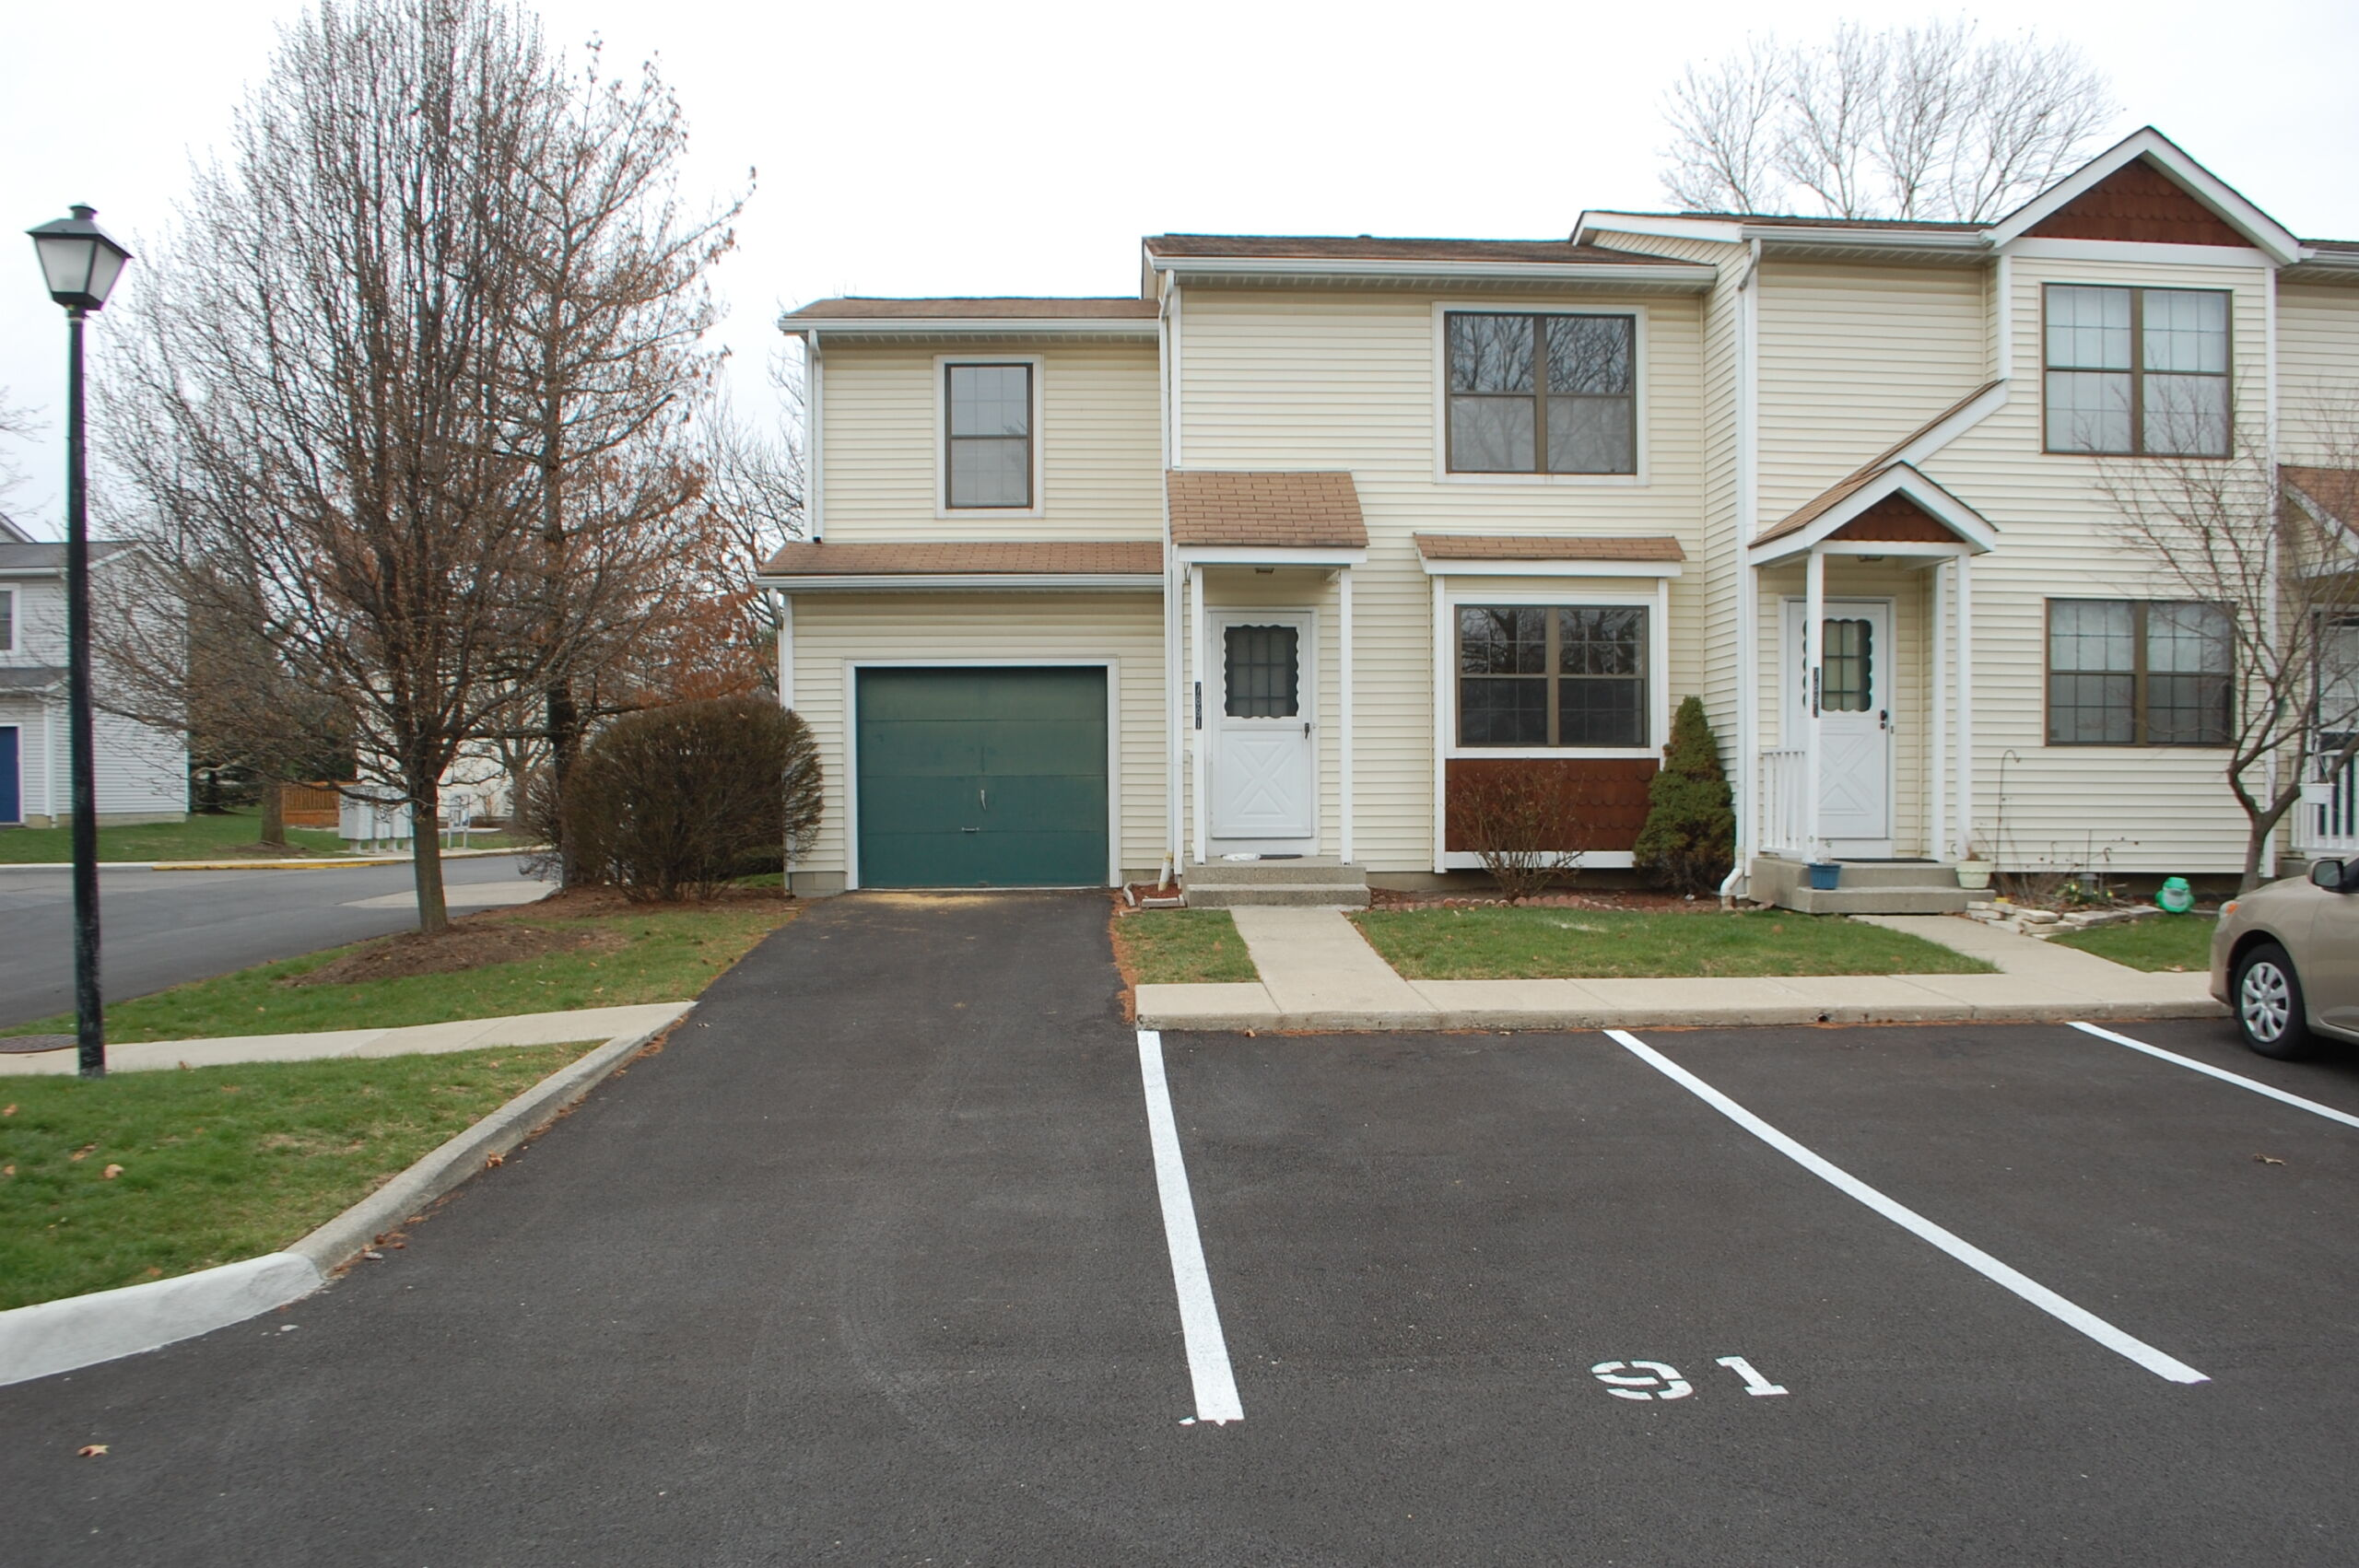 RARE Updated 3-Bedroom, 1.5-Bath Condo in Worthington Schools with Garage + Extra Parking!